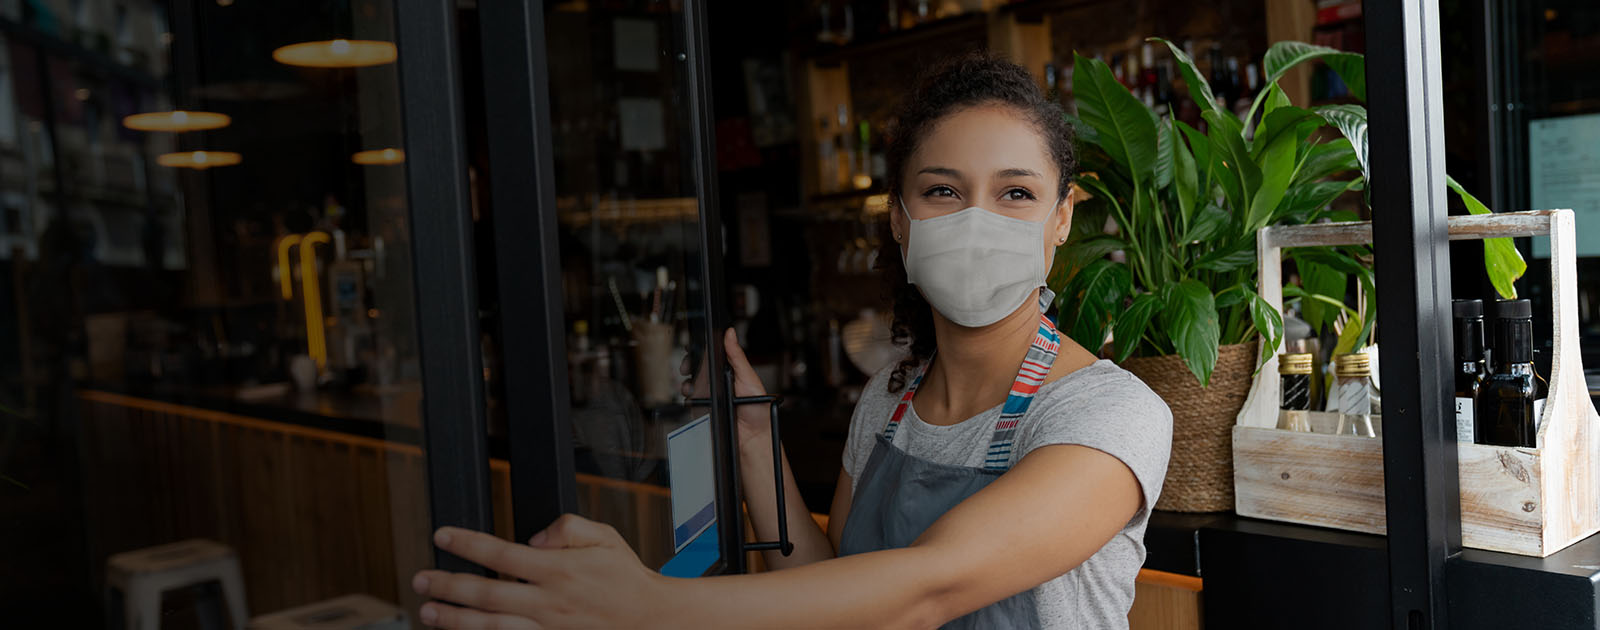 Small and medium business owners stay resilient through the pandemic